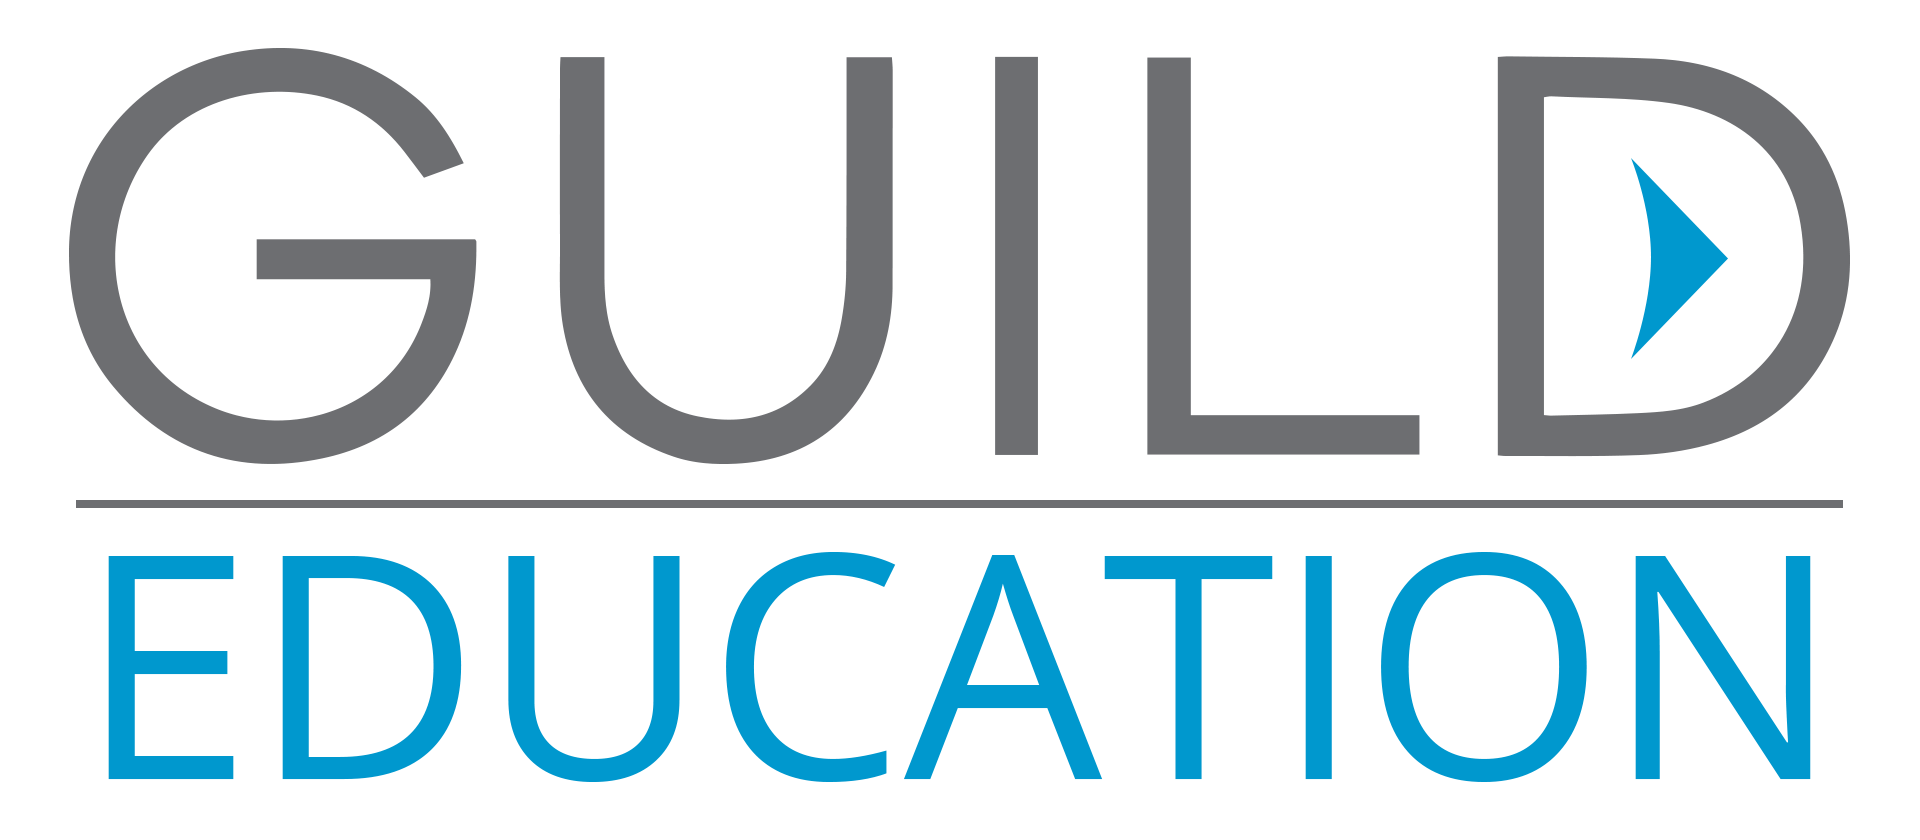 Guild education logo.png?ixlib=rails 2.1